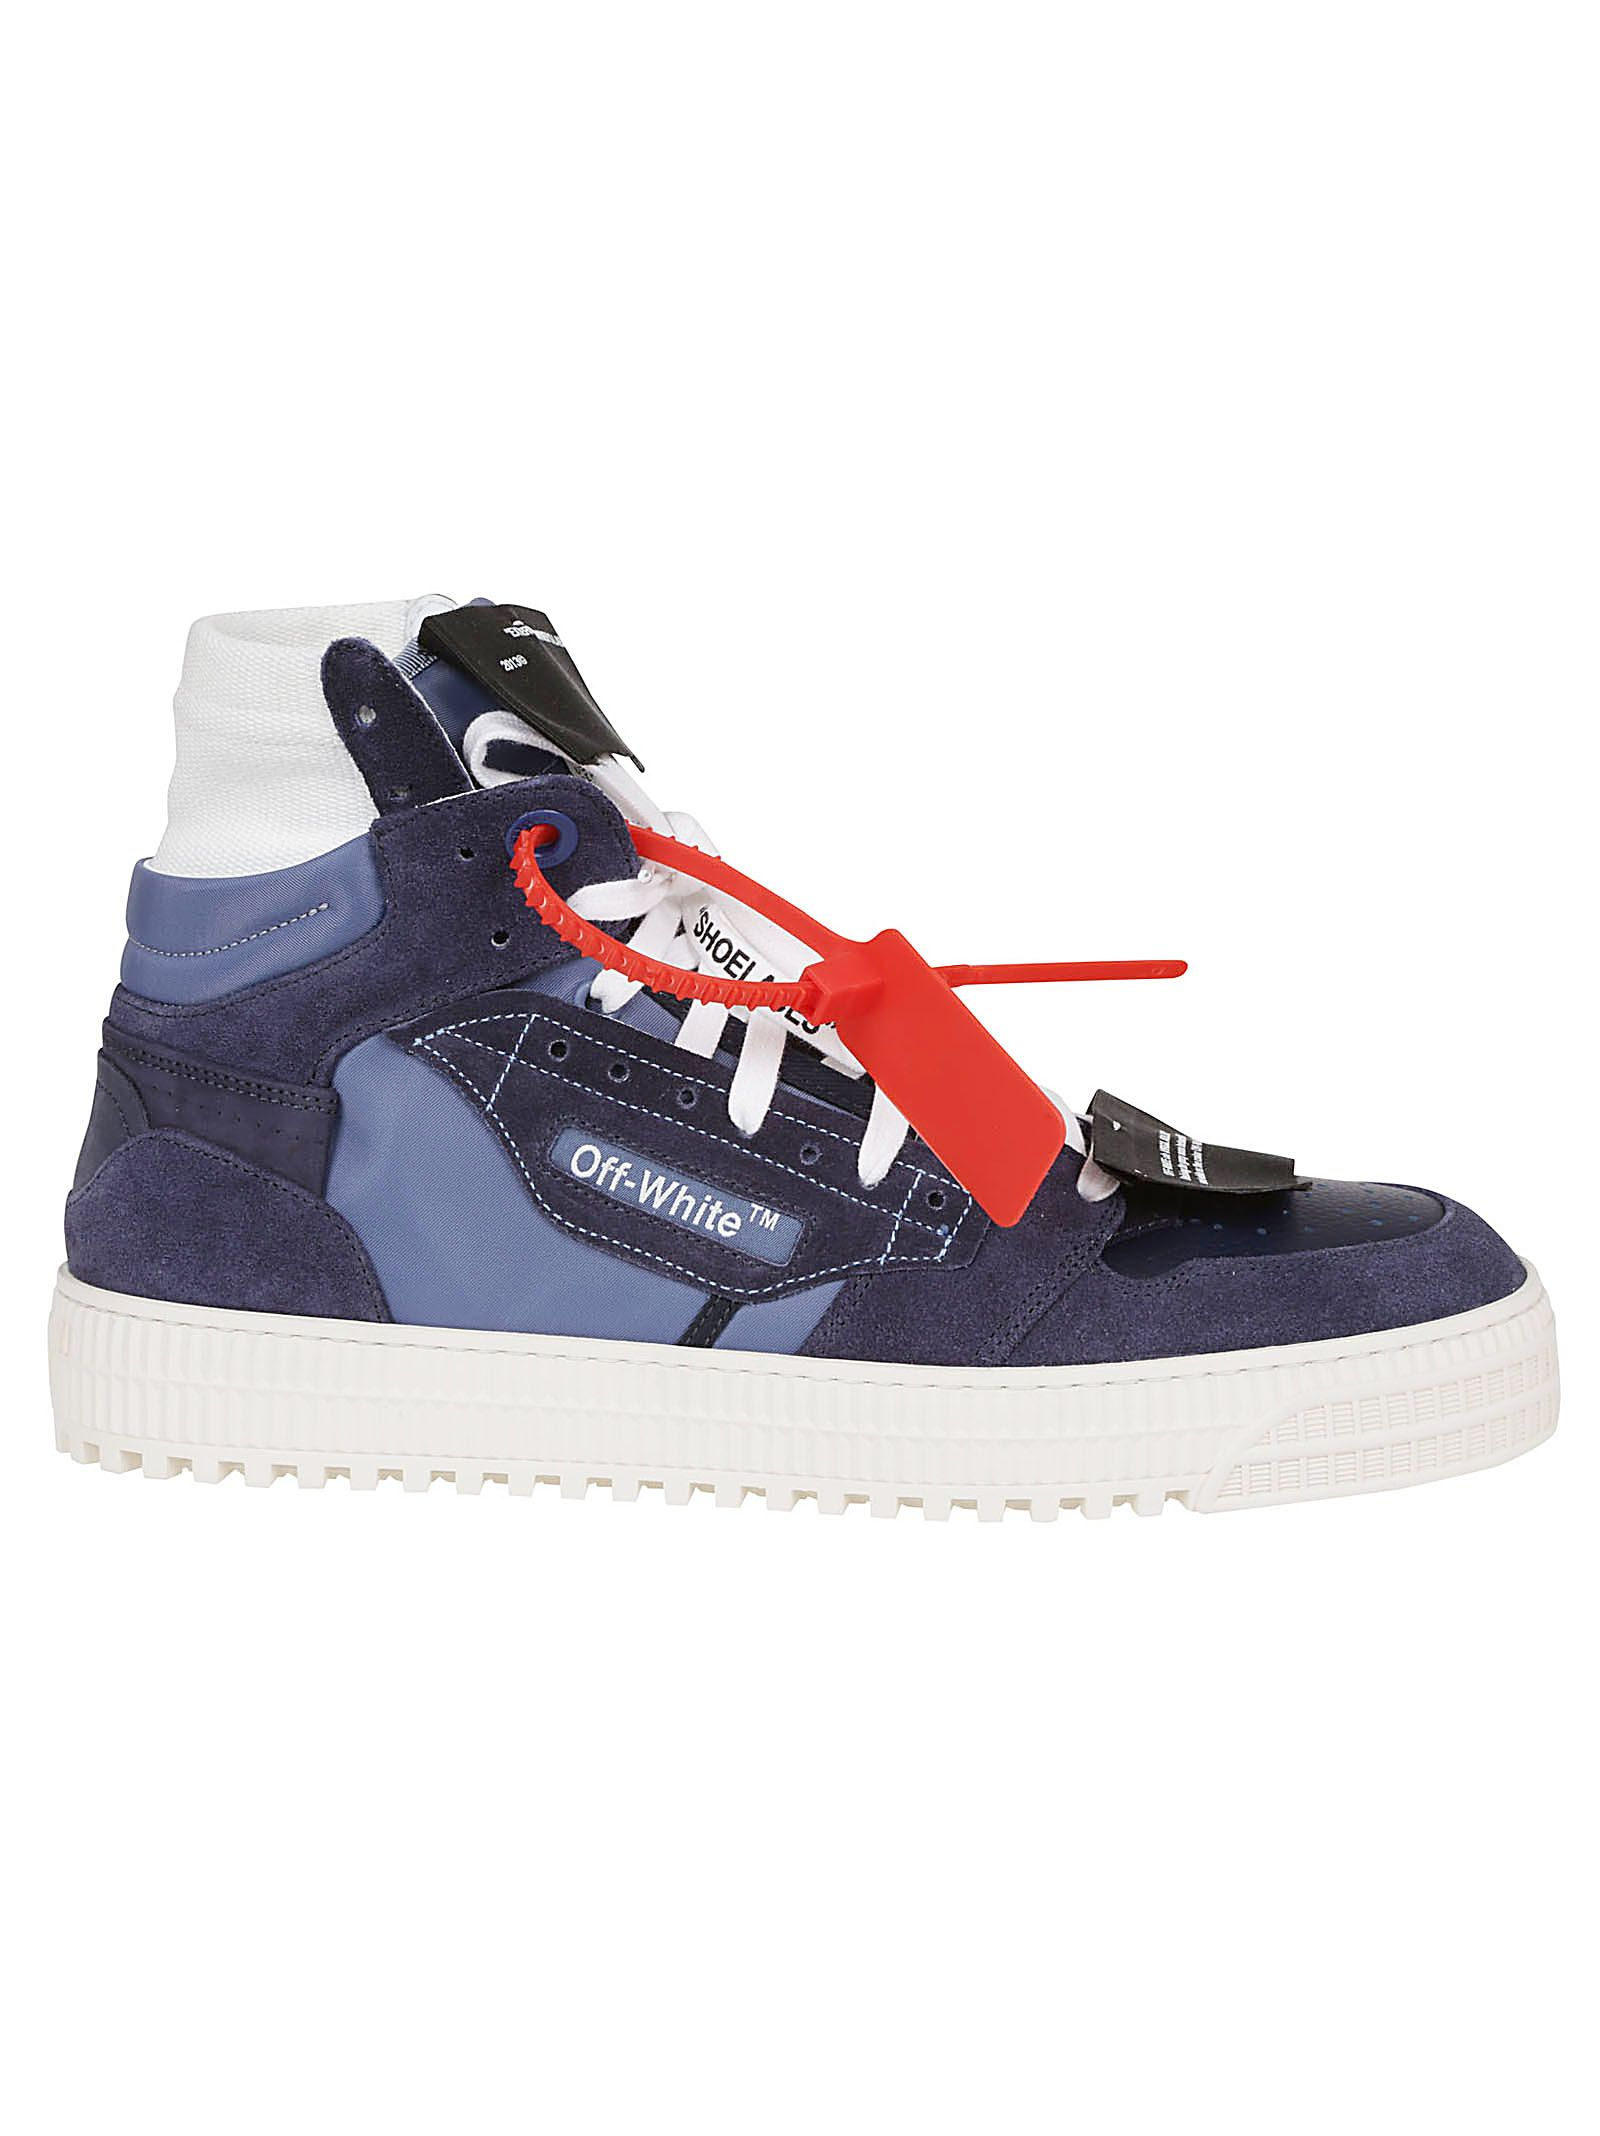 Off-White Sneakers Off-White Hi-cut Sneakers